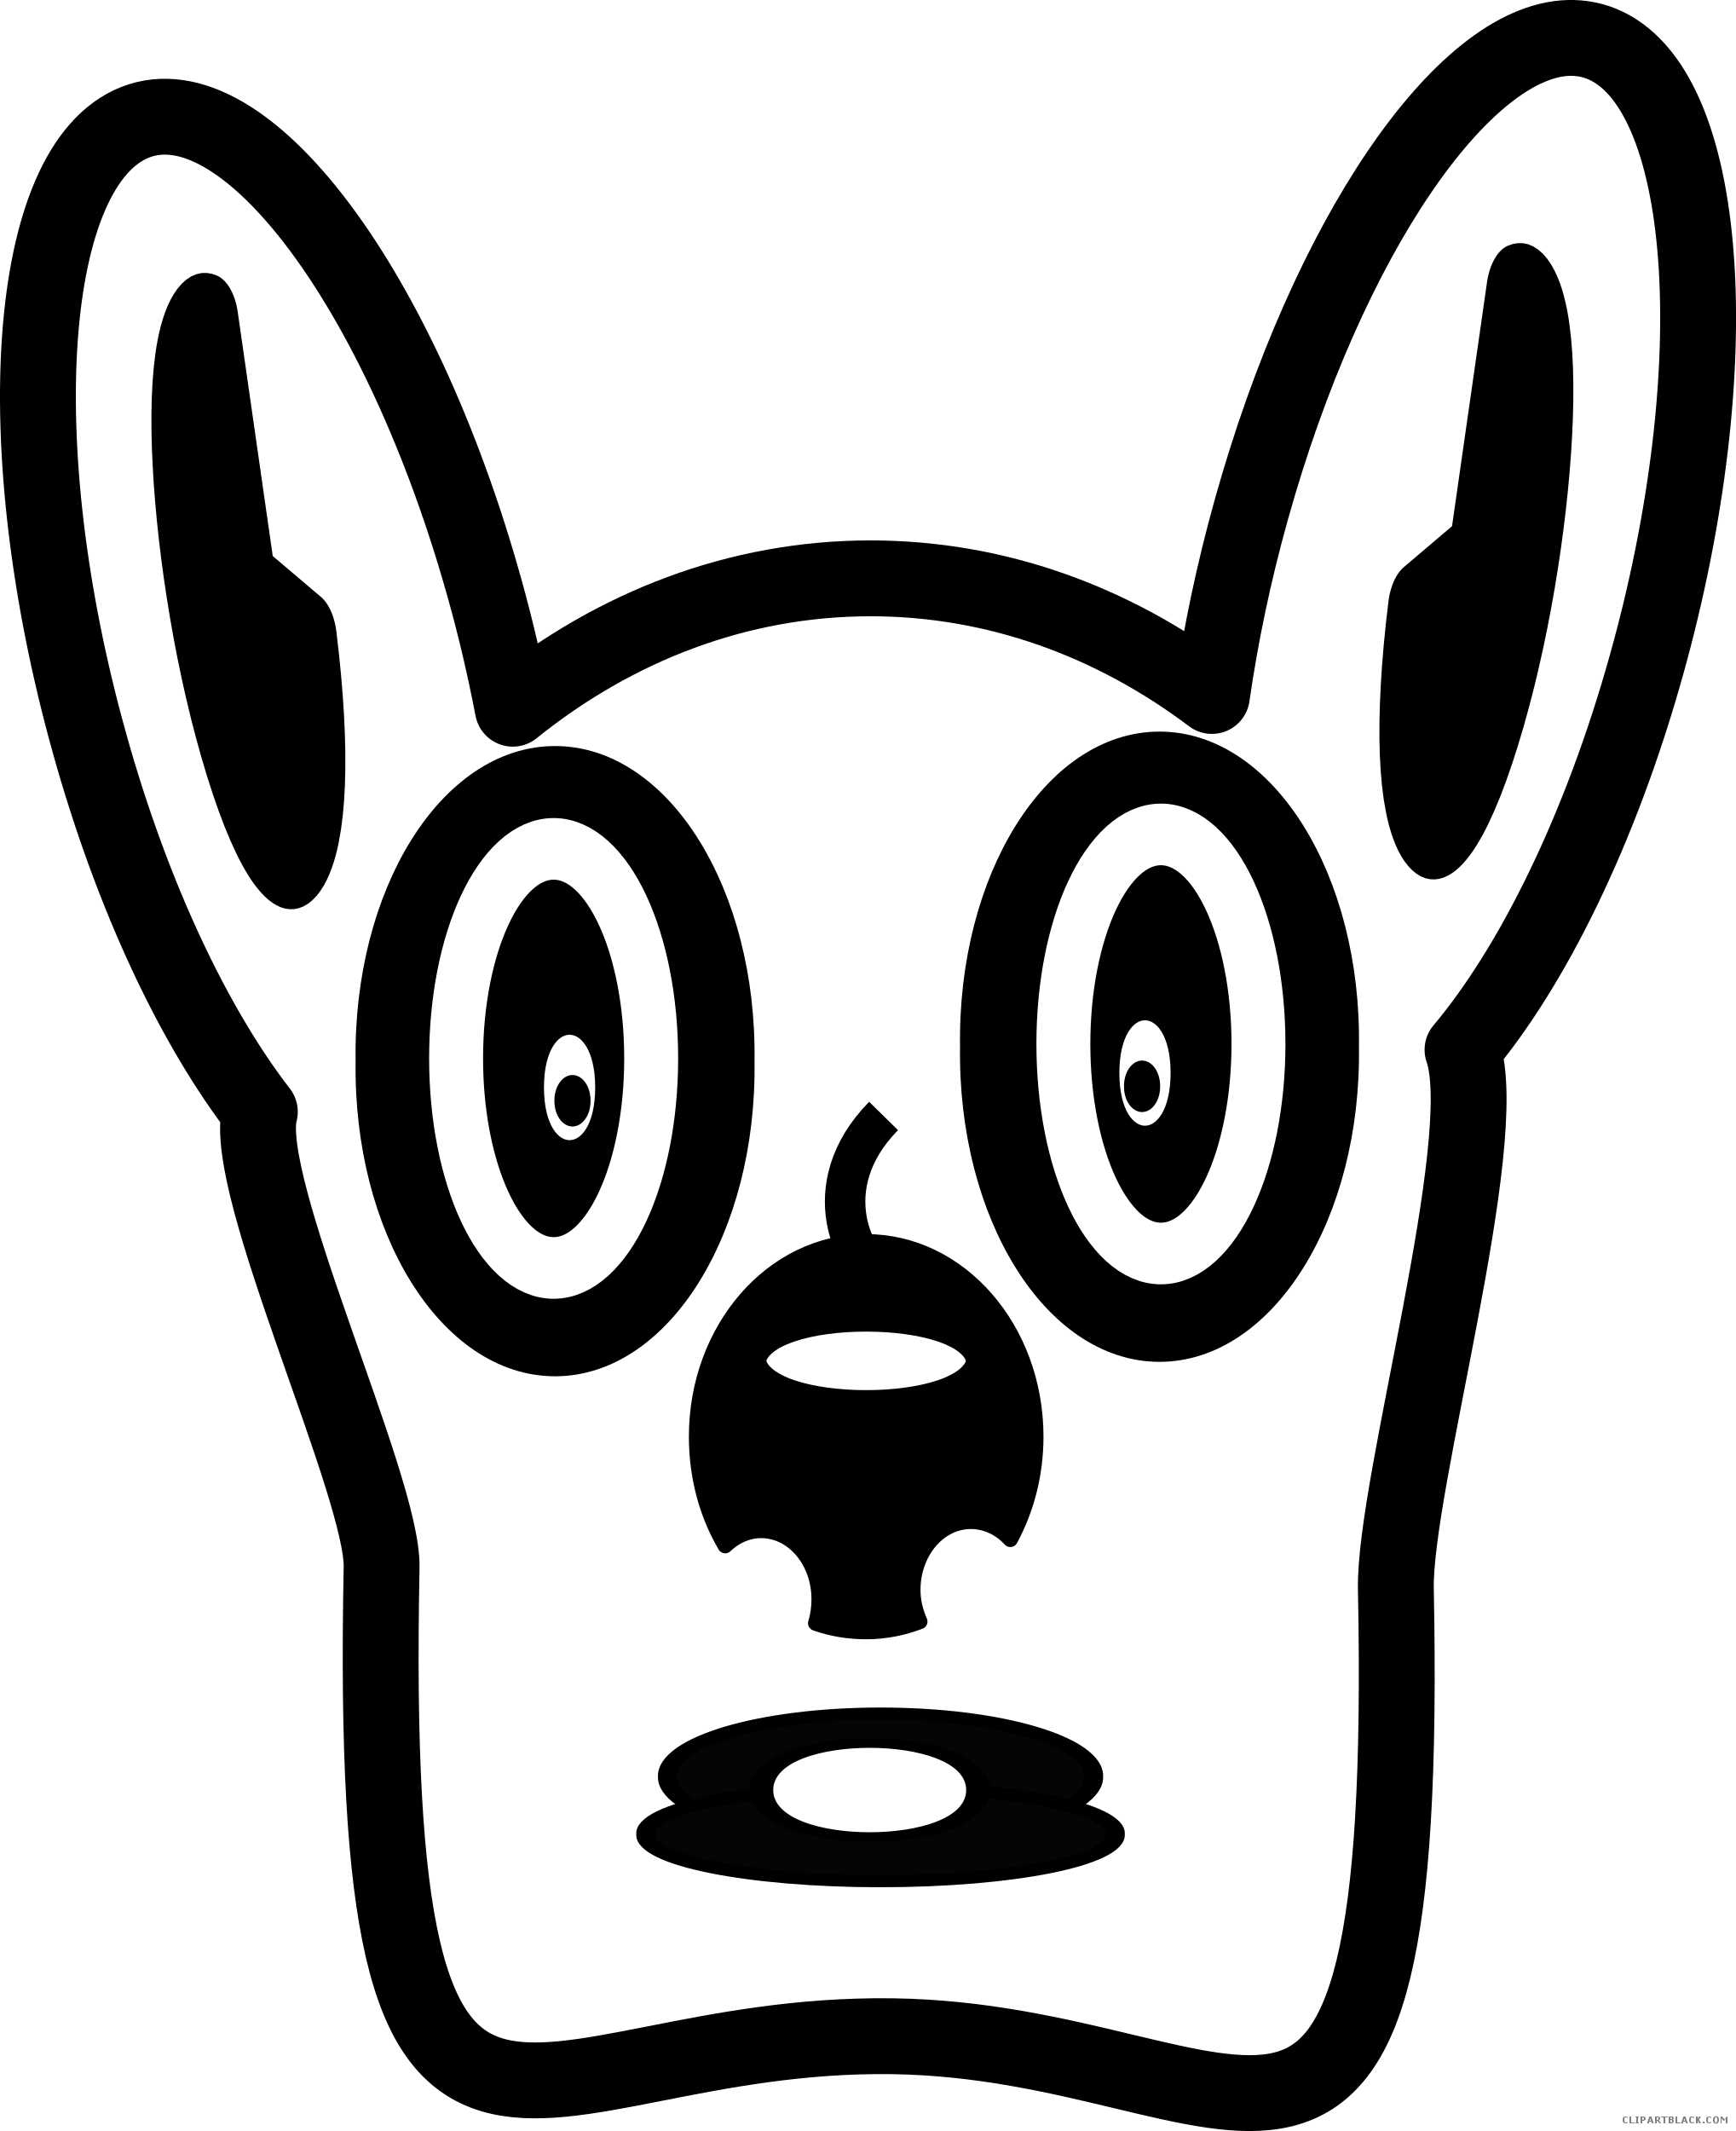 Dog clipart black white clipart royalty free library Dog Face Animal free black white clipart images clipartblack ... clipart royalty free library